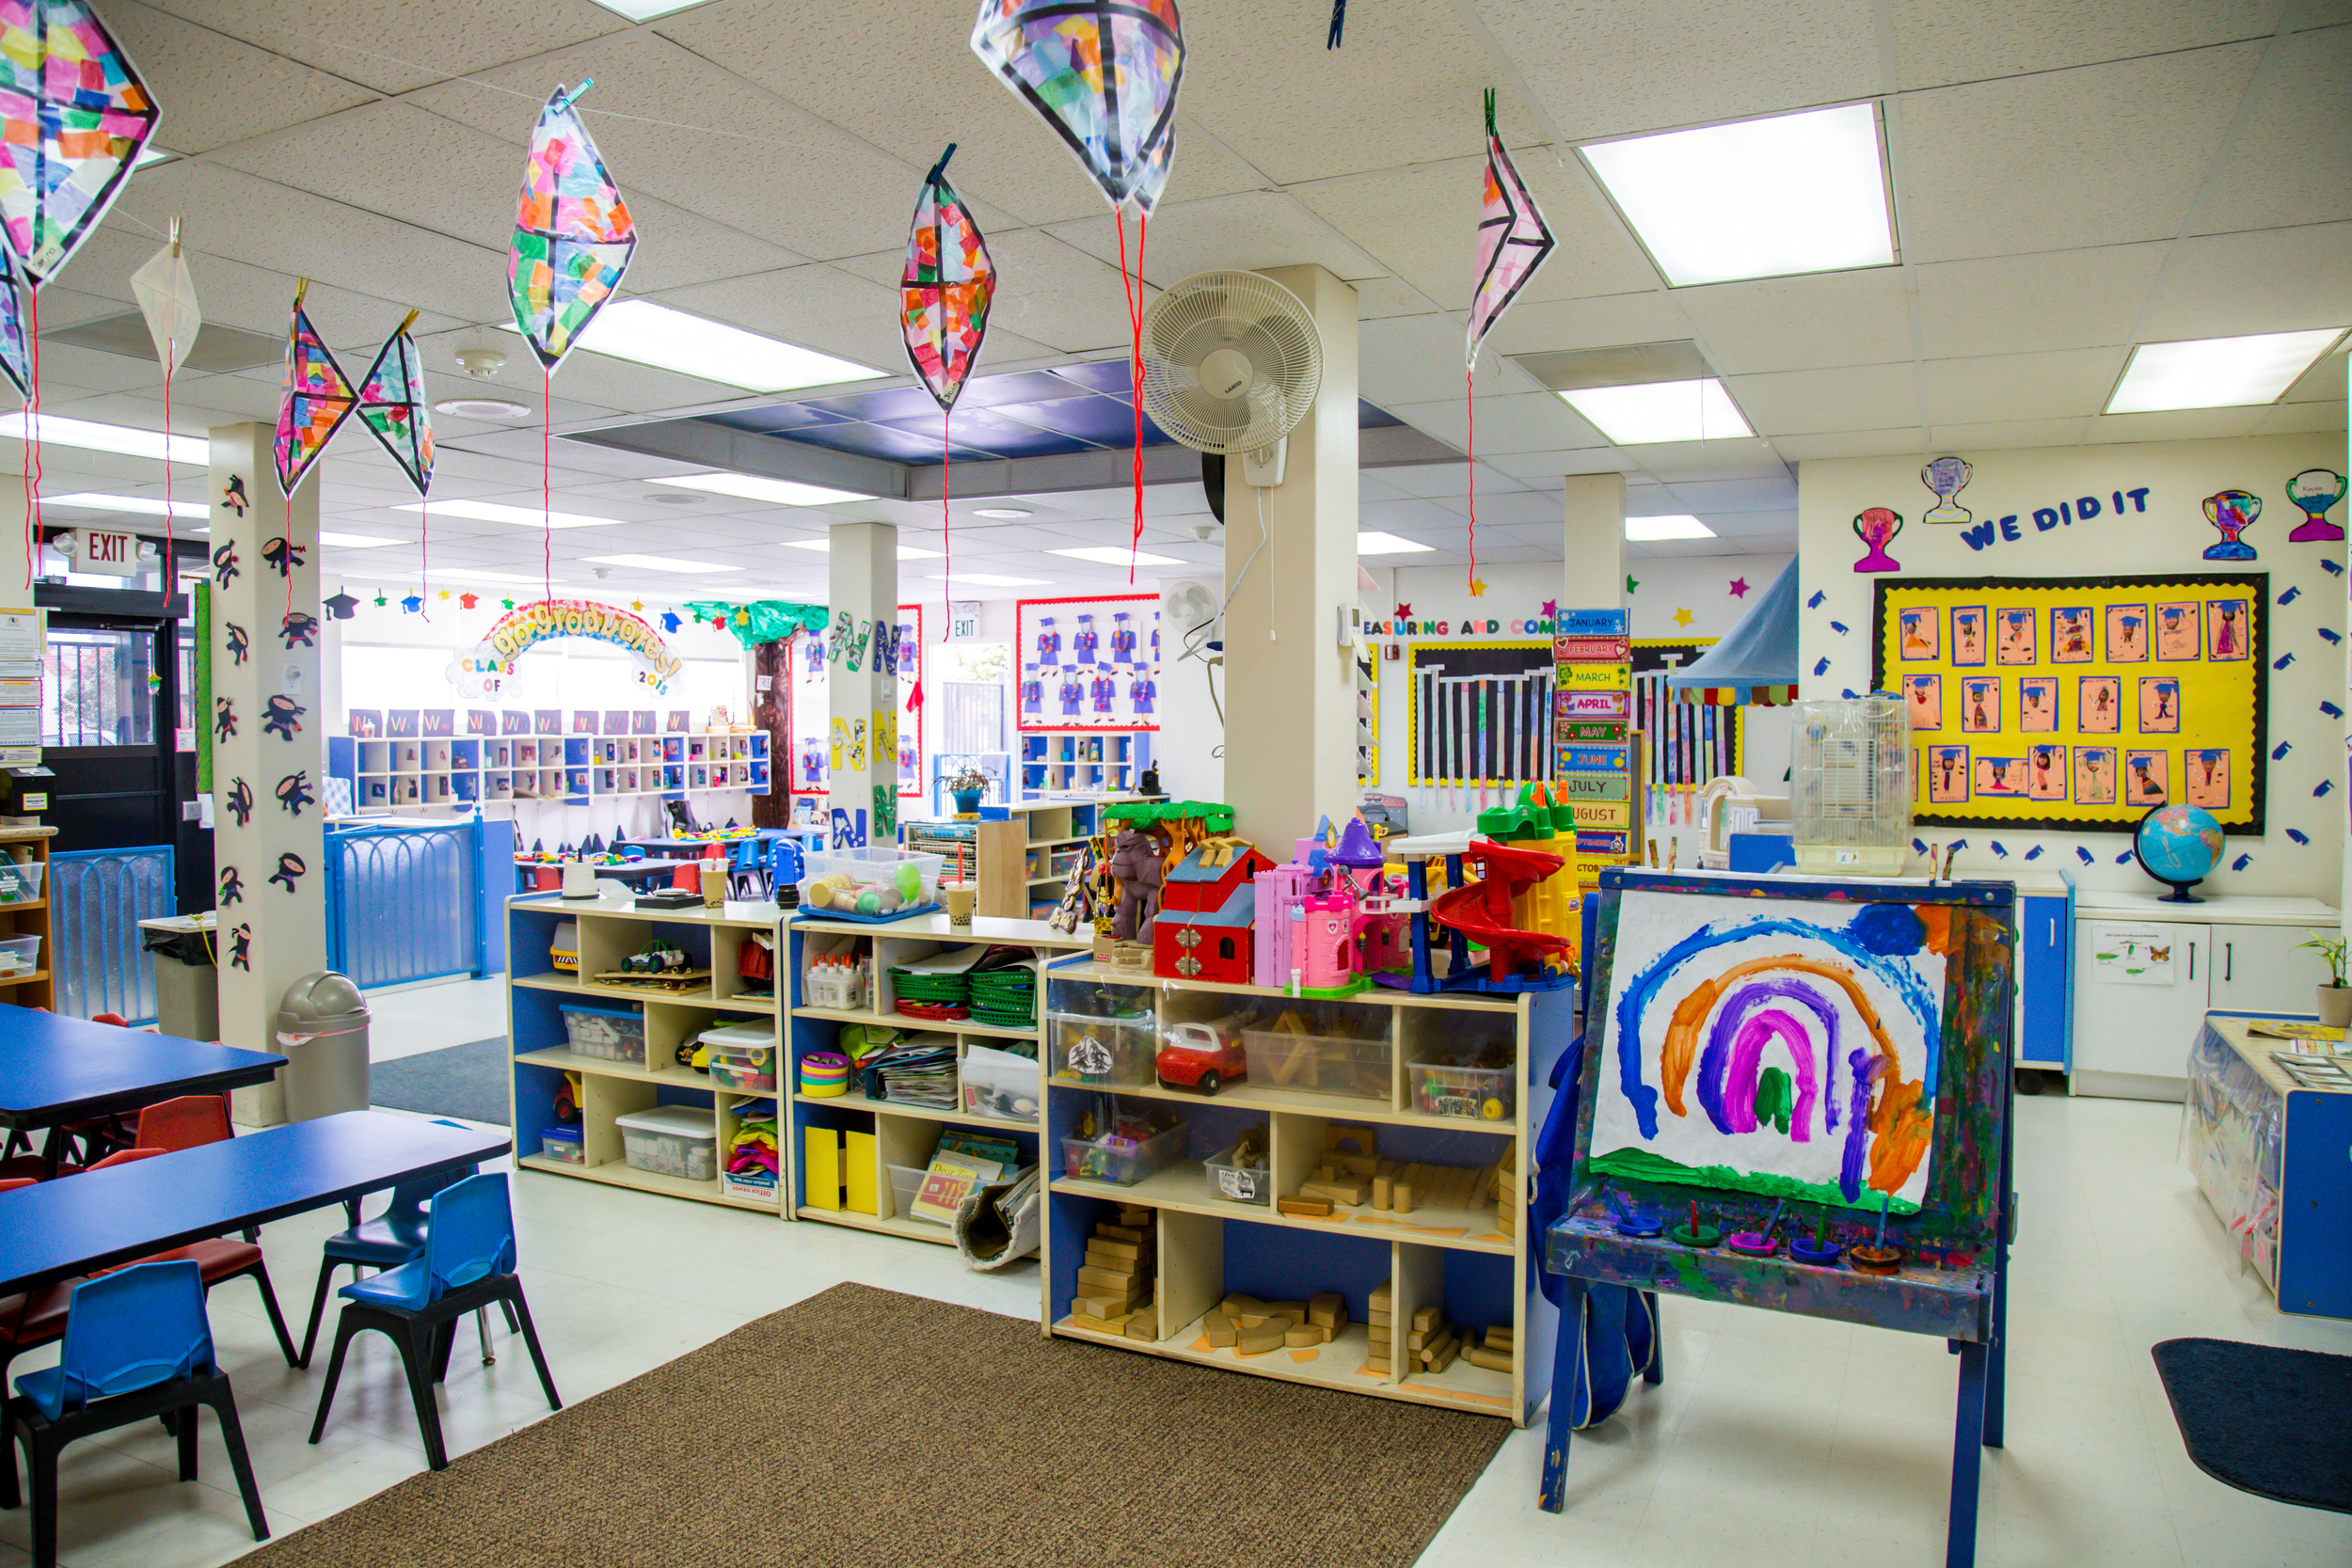 The Daisy Room's art center. Colorful projects made by the children surround us ina fun, receptive environment for learning and playing.